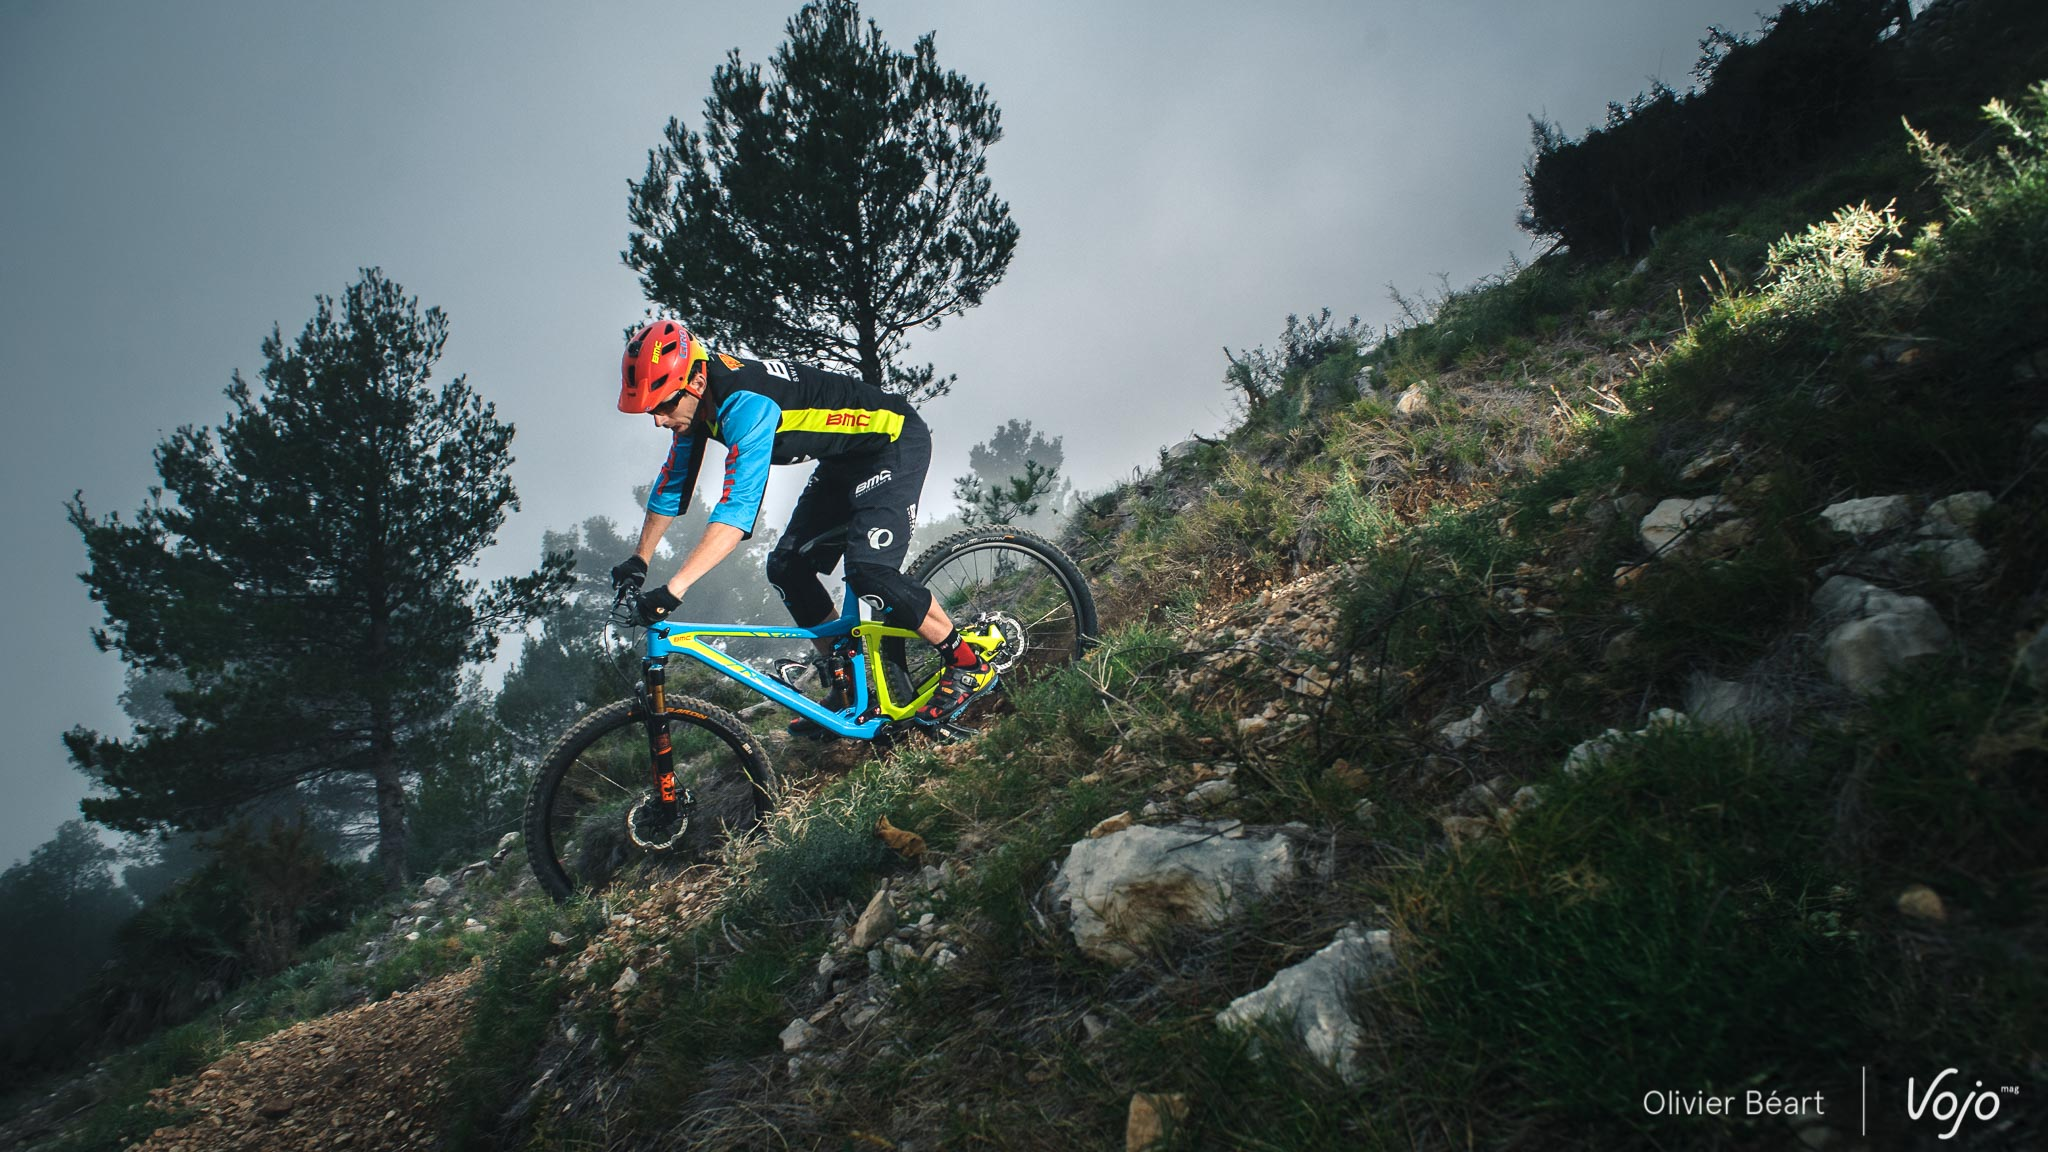 Francois_Bailly_Maitre_Interview_BMC_TrailCrew_Copyright_OBeart_VojoMag-3